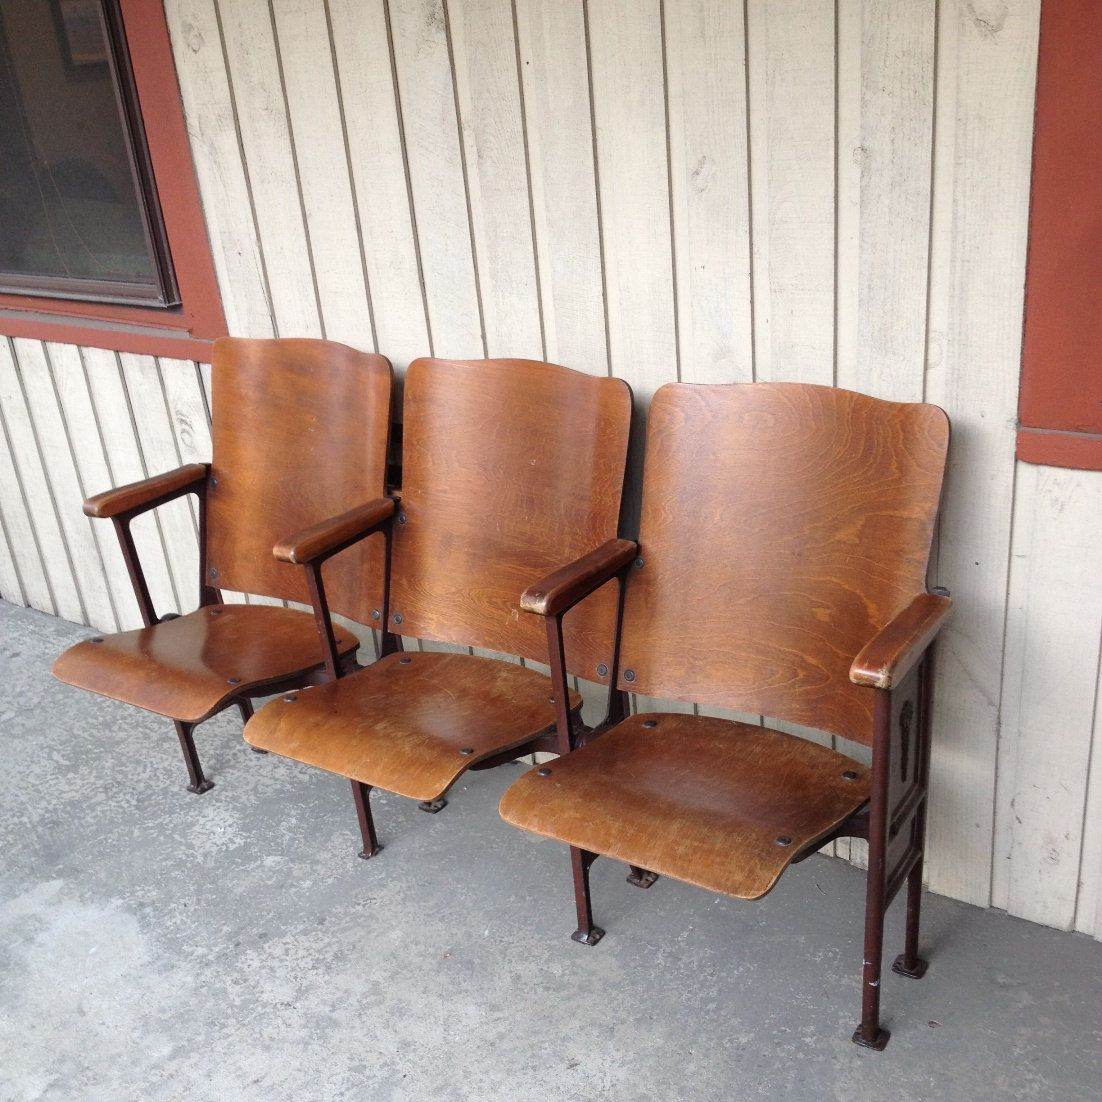 Antique Theatre Seating or Church Seats Connected Wood And Iron - Antique Theatre Seating Or Church Seats Connected Wood And Iron